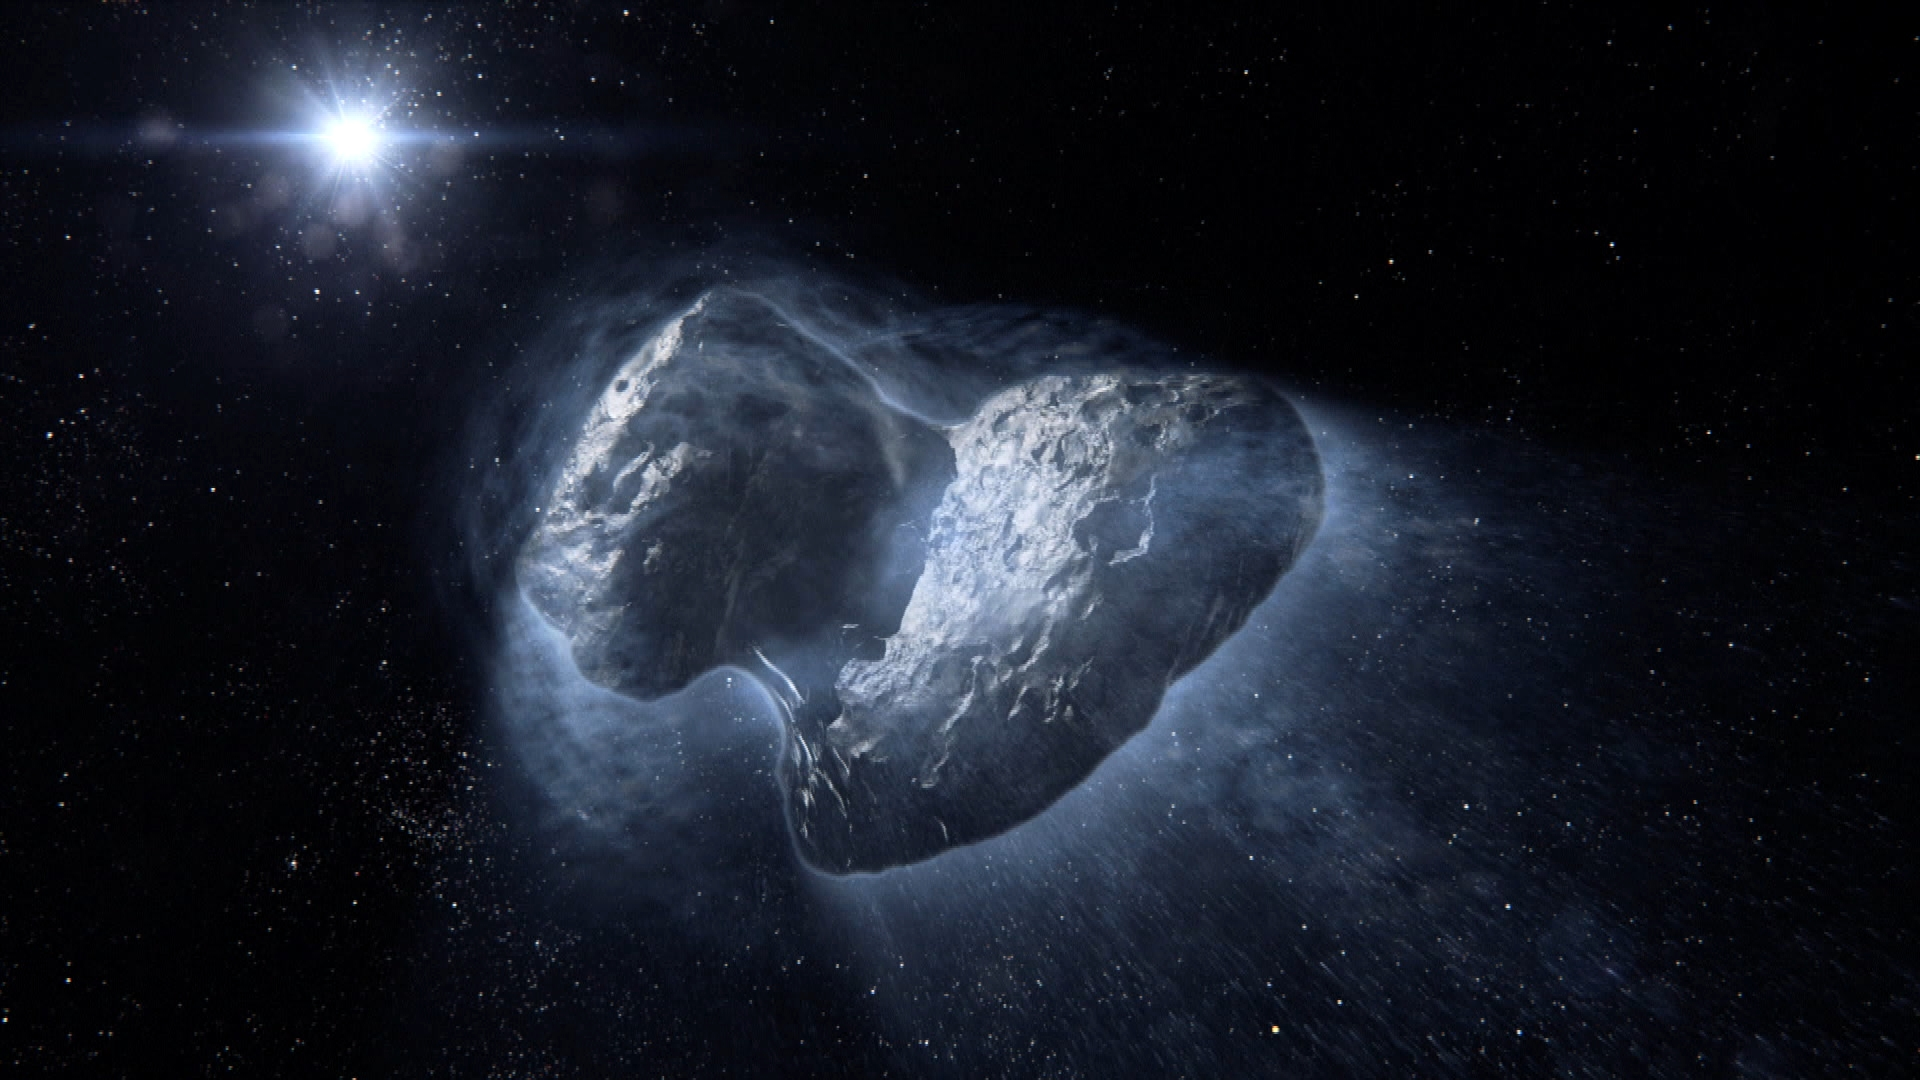 Science Channel to Pay Tribute to Rosetta Comet Mission Friday